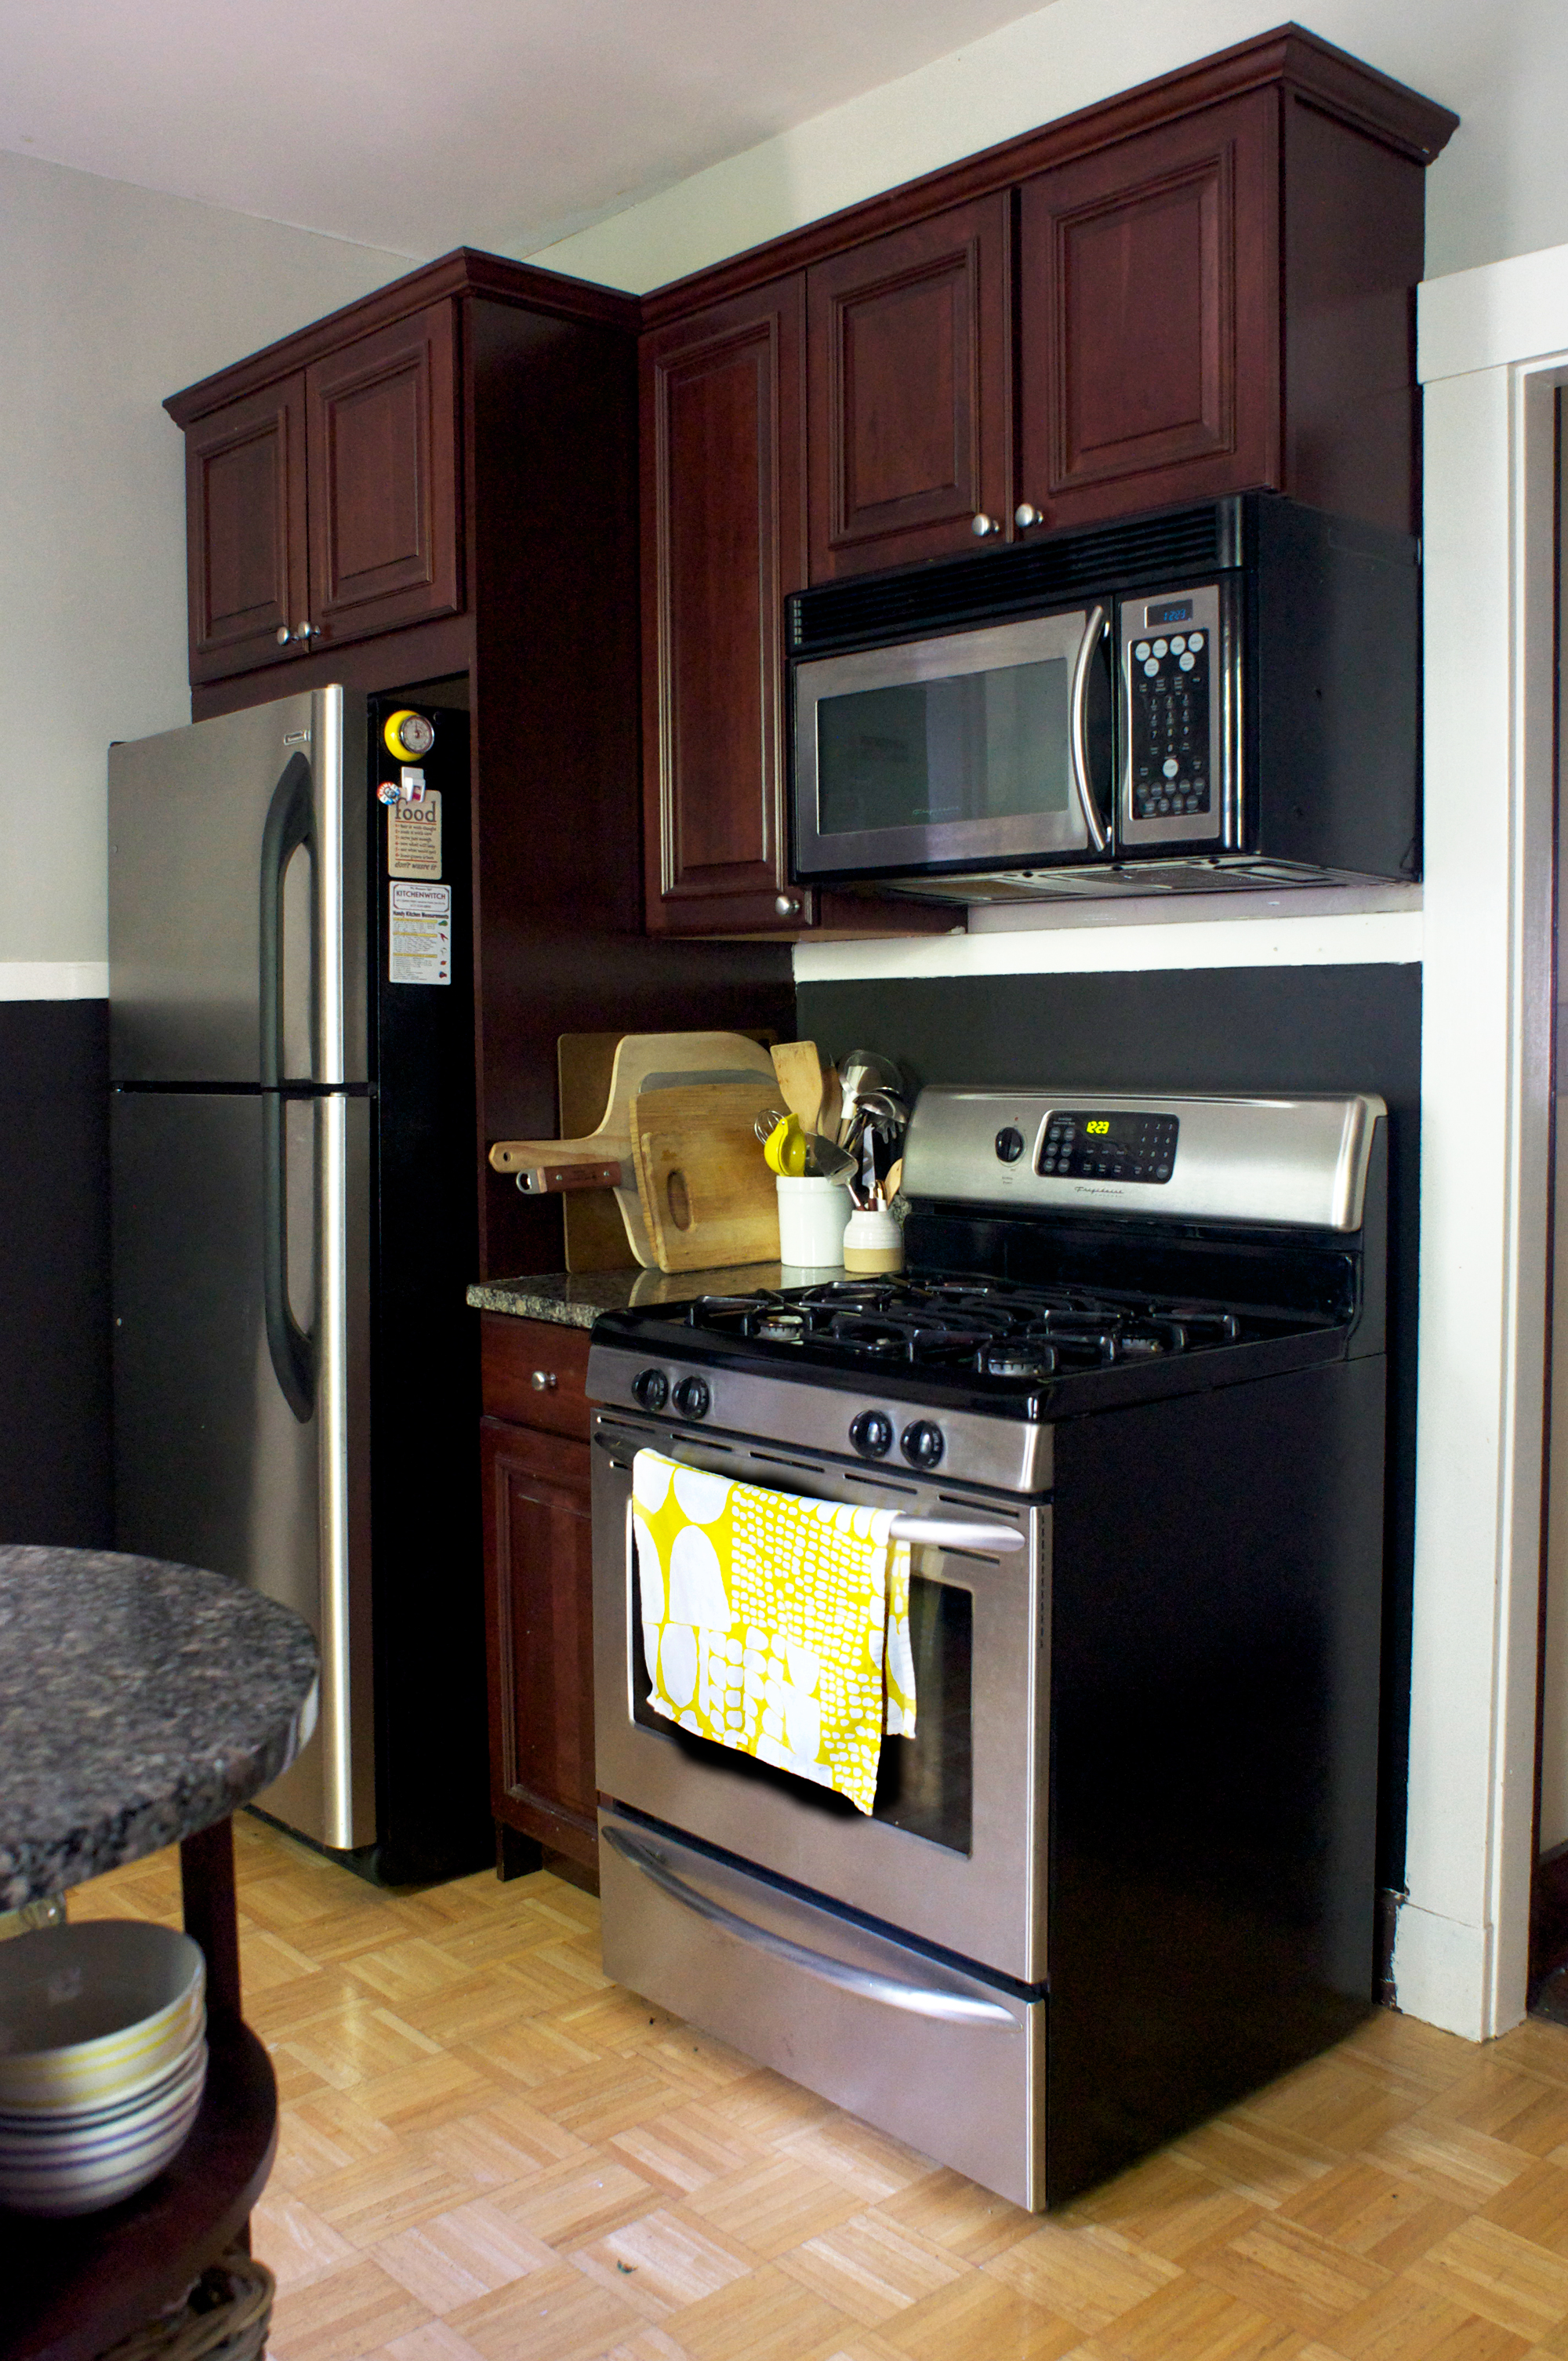 How I Repainted My Rental Kitchen And Made Peace With The Cherry Cabinets Kitchn